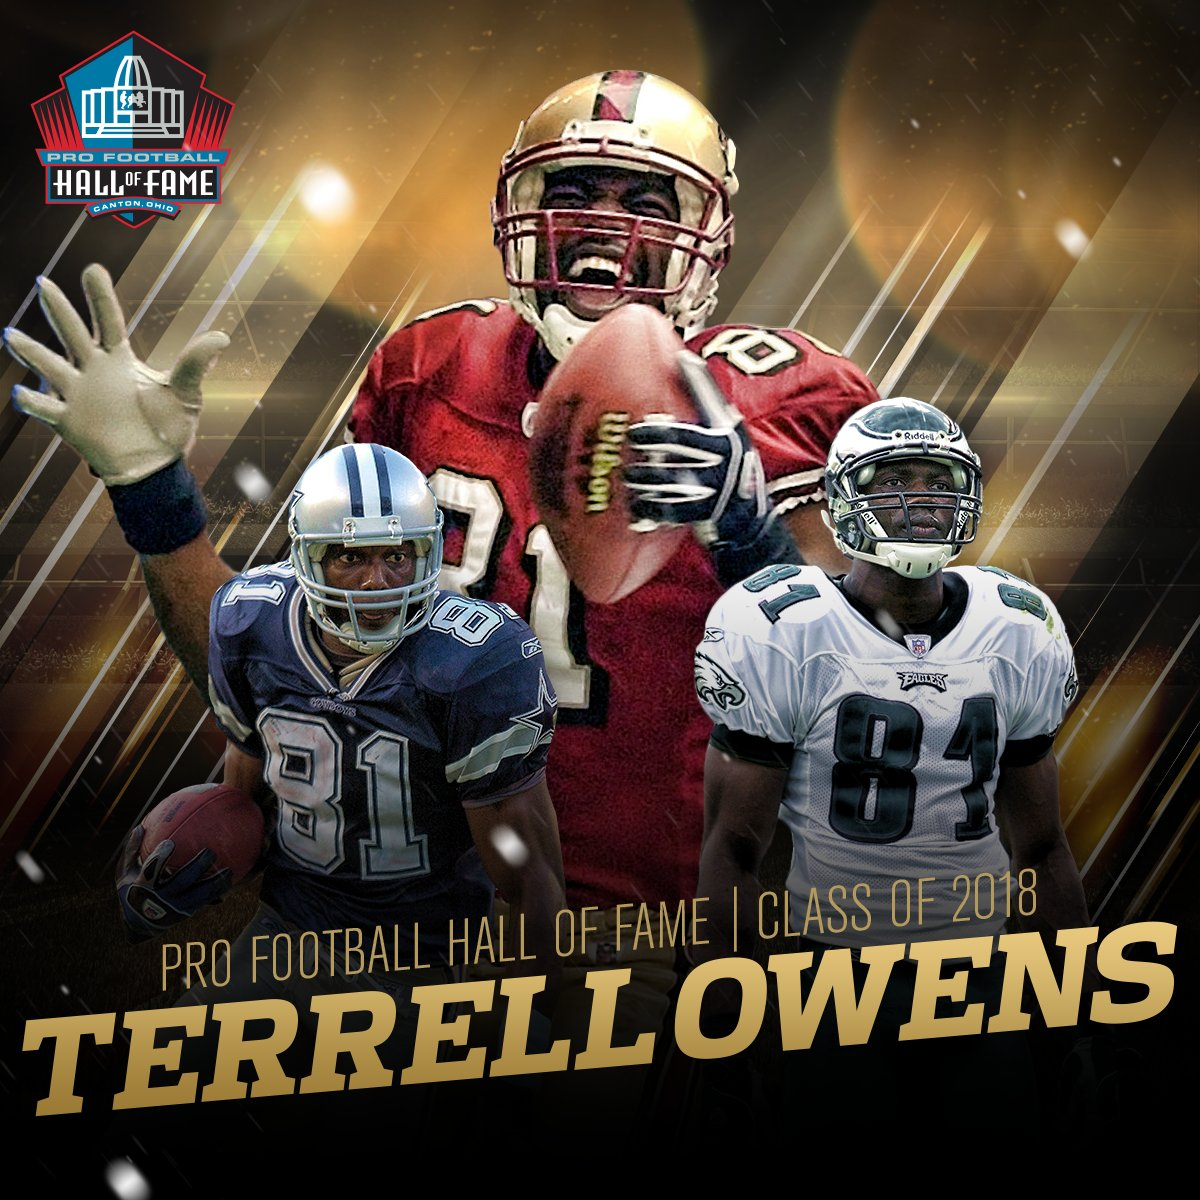 .@terrellowens is a HALL OF FAMER!  See you in Canton! #PFHOF18